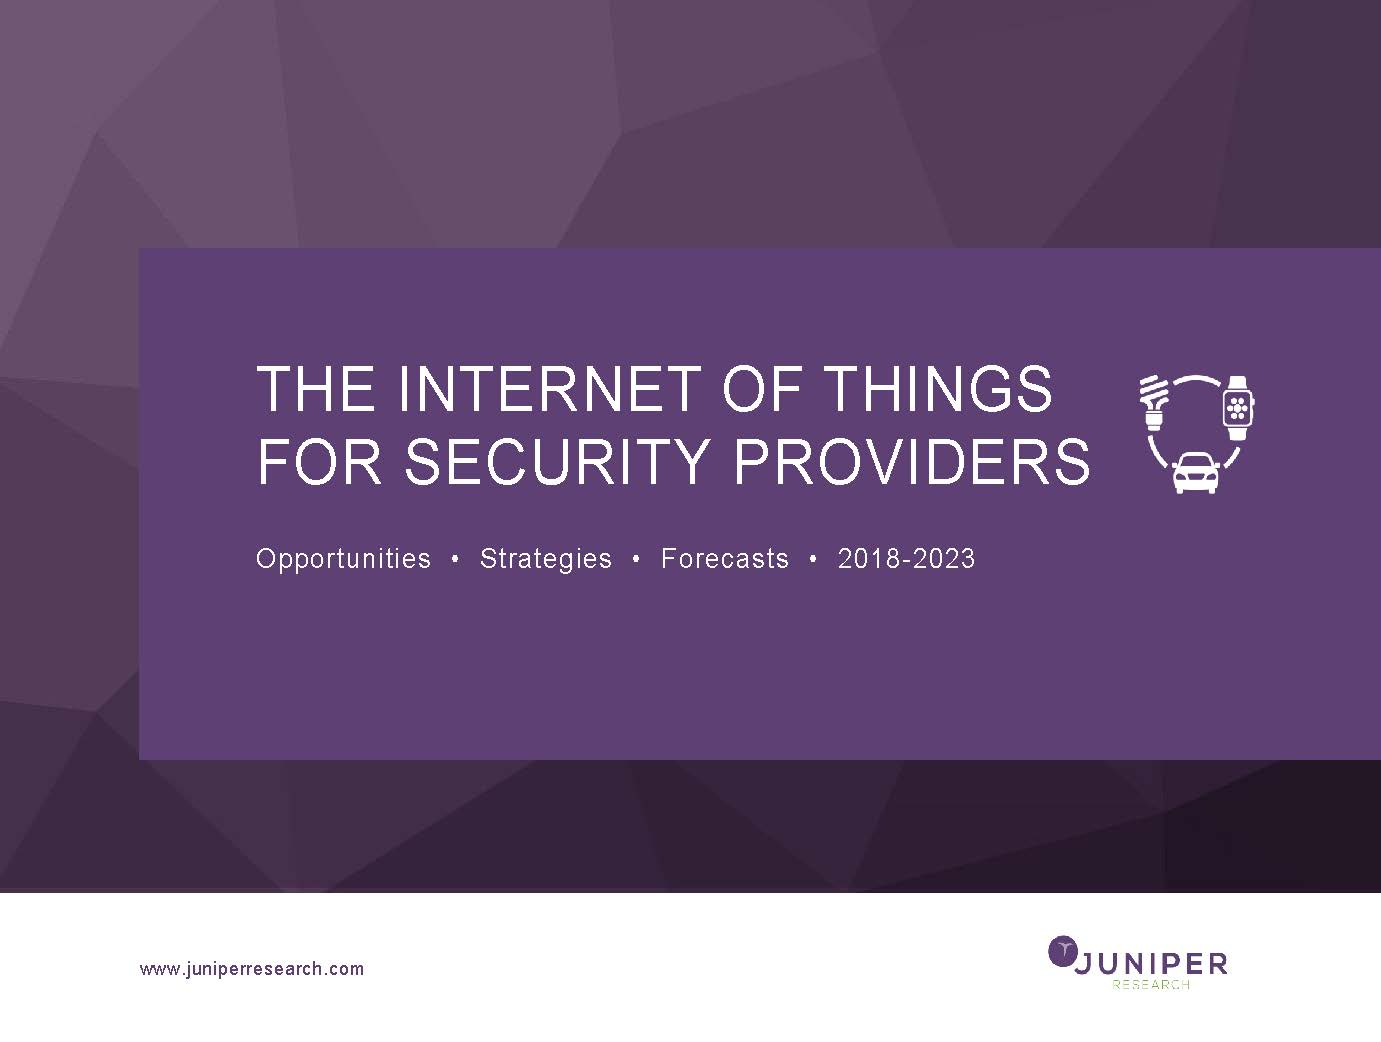 The Internet of Things for Security Providers: Opportunities, Strategies & Forecasts 2018-2023